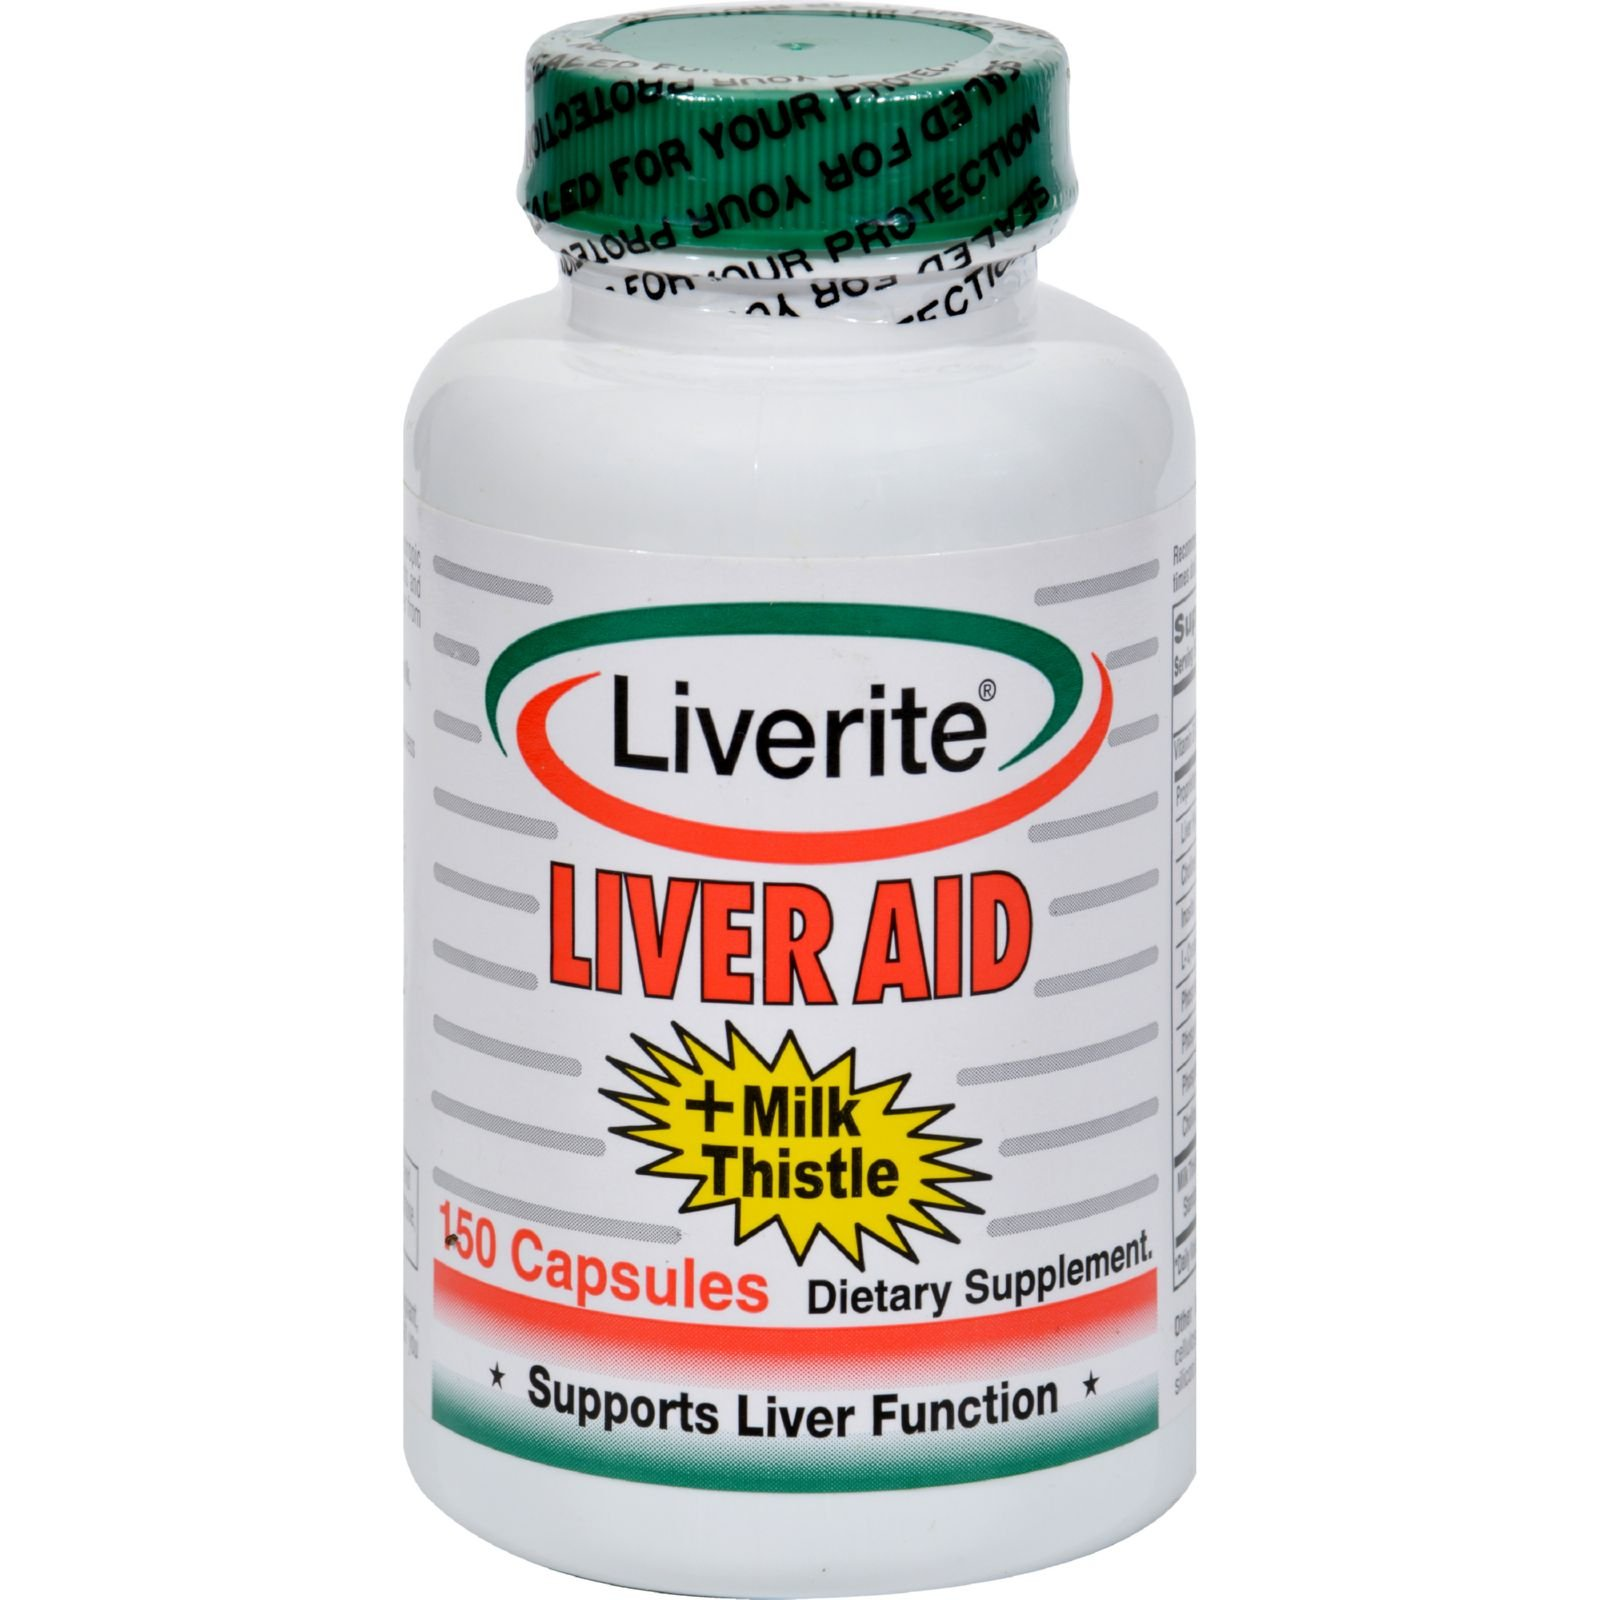 Liverite Liver Aid Plus Milk Thistle - Supports Liver Function - Gluten Free - Dairy Free - 150 Capsules (Pack of 2)